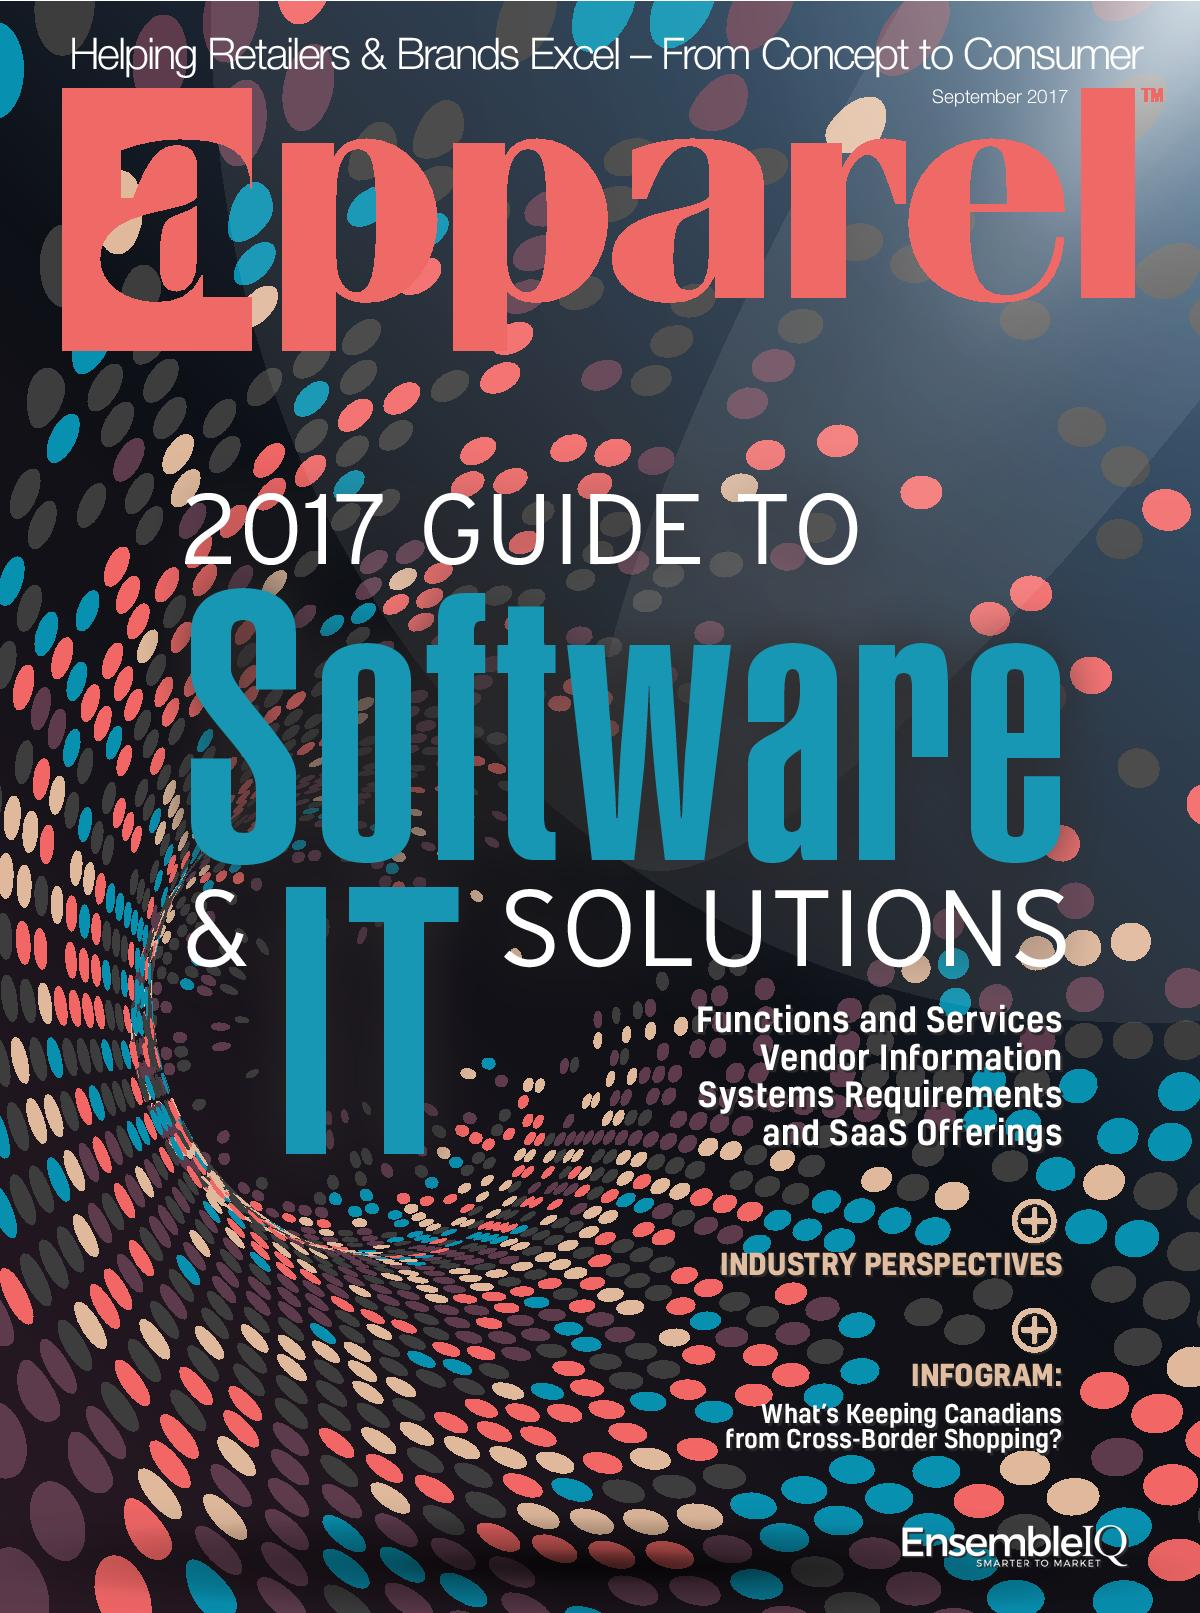 Apparel Magazine's September 2017 issue focusing on IT and software solutions for fashion enterprises.